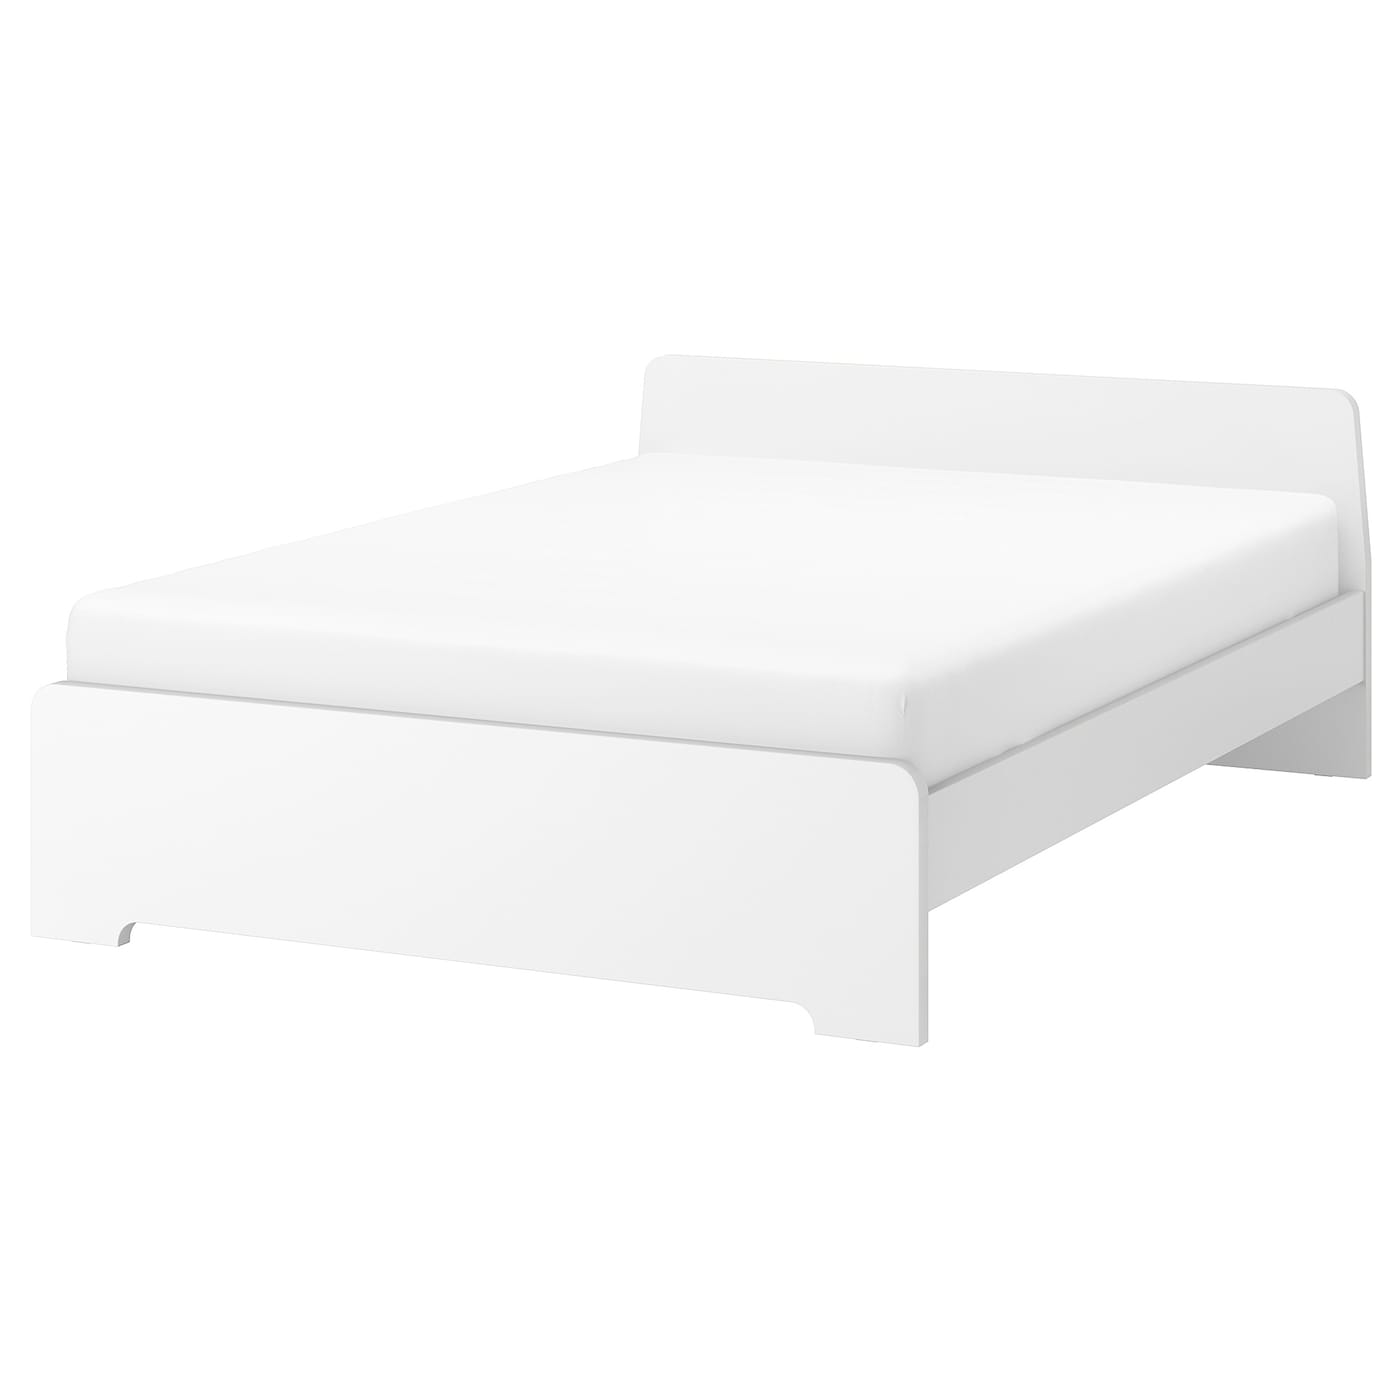 askvoll bed frame white lur y standard double ikea. Black Bedroom Furniture Sets. Home Design Ideas